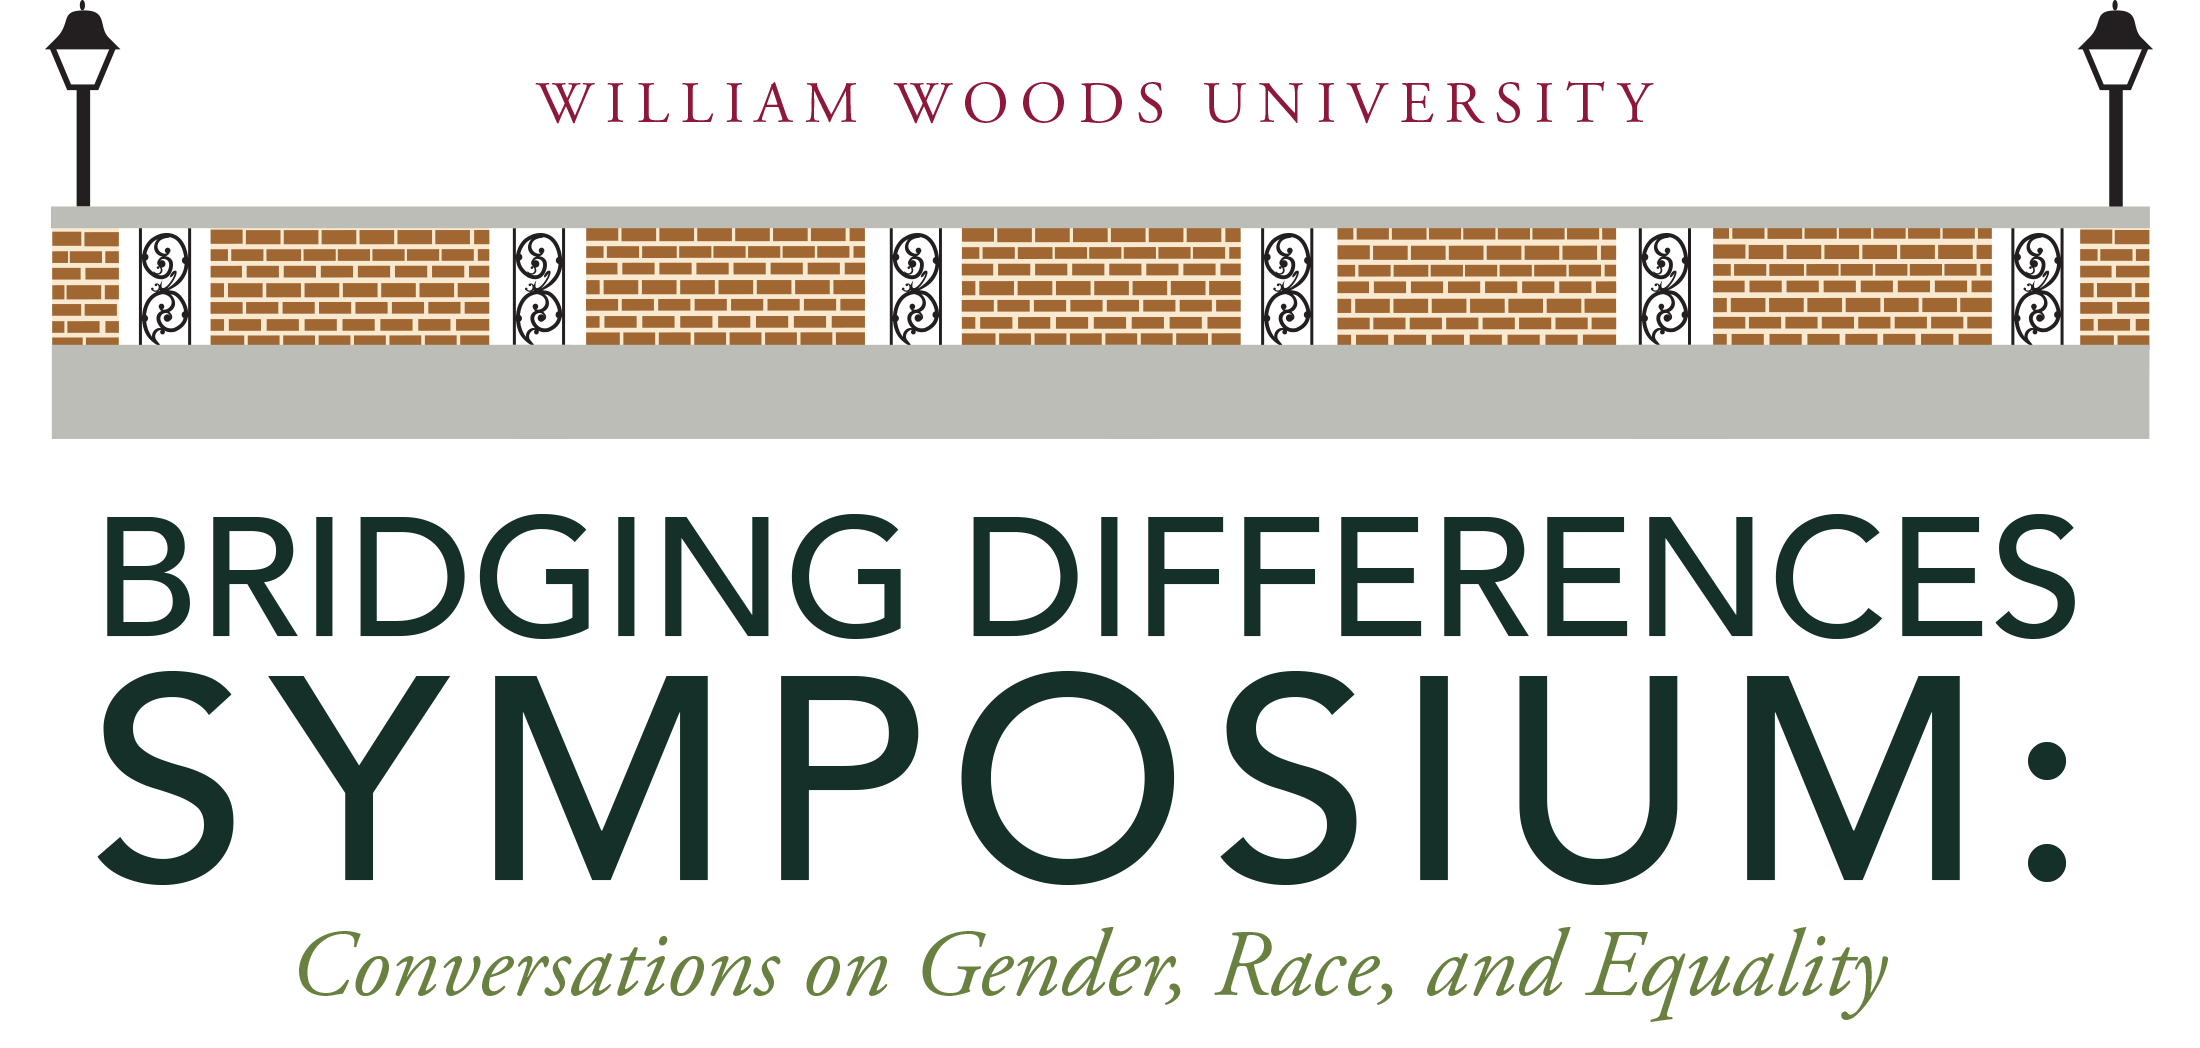 Bridging Differences Symposium: Conversations on Gender, Race, and Equality